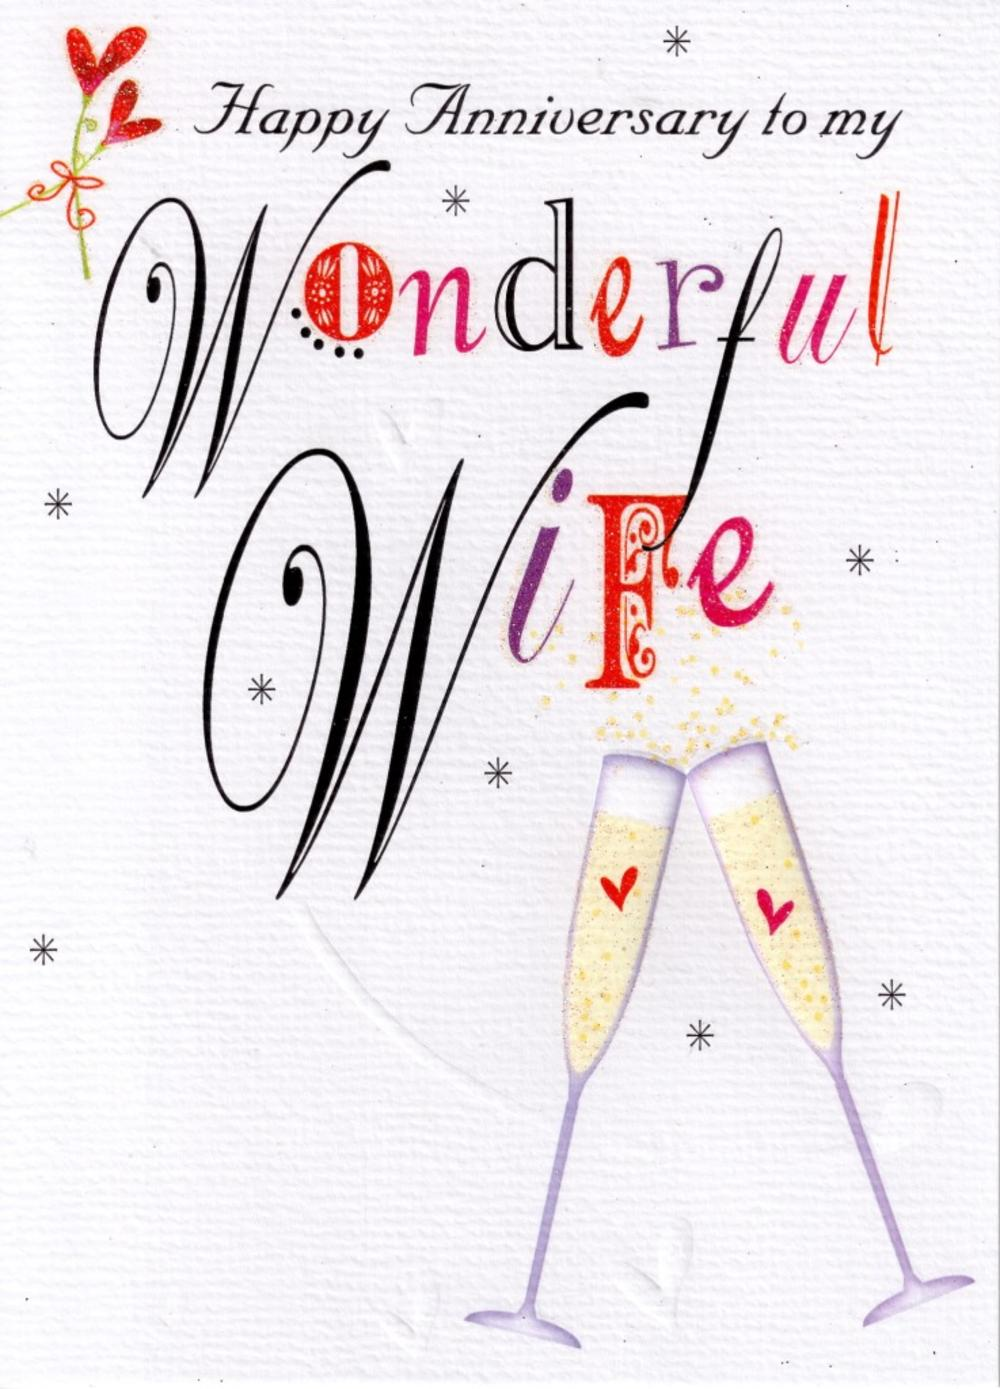 Happy anniversary wife 3 months pregnant 7